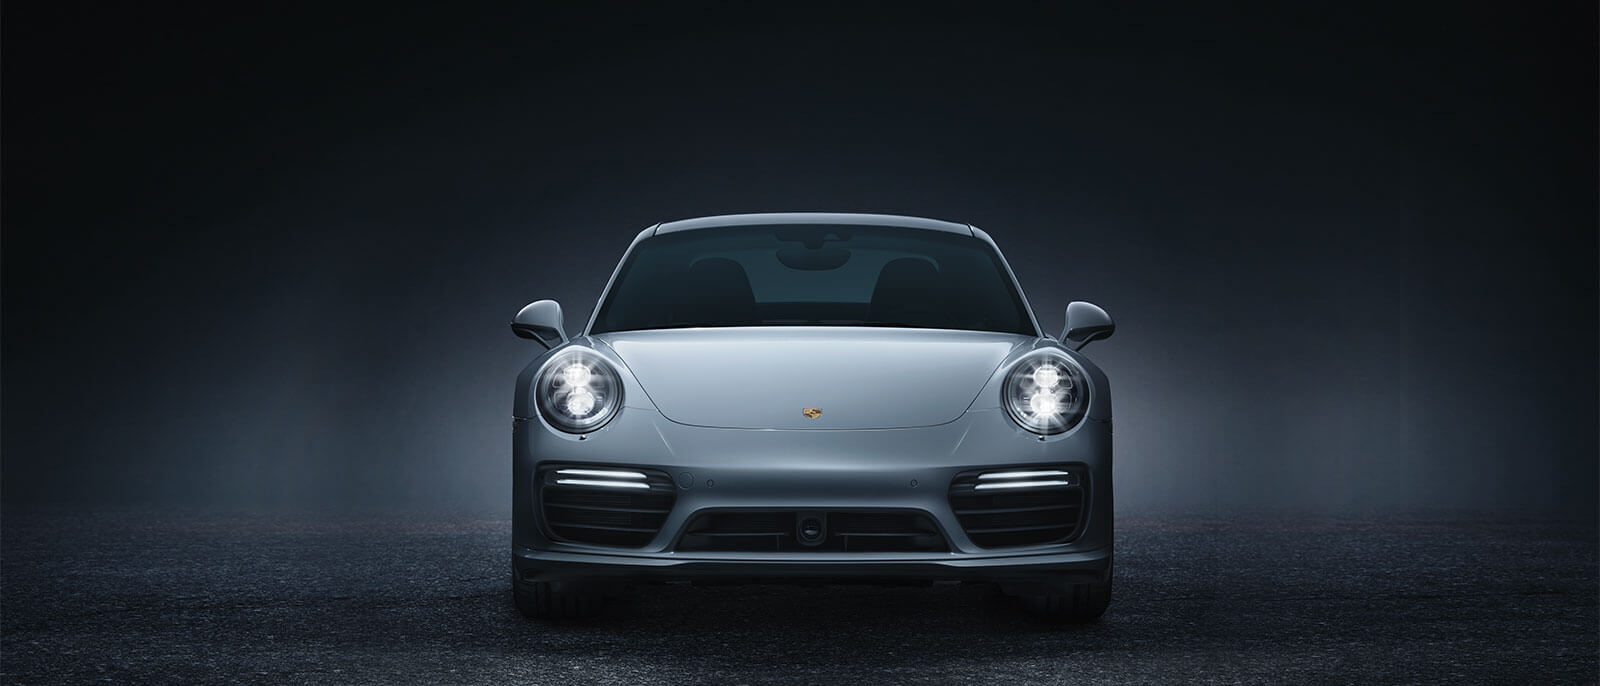 2016 Porsche 911 Turbo S front view